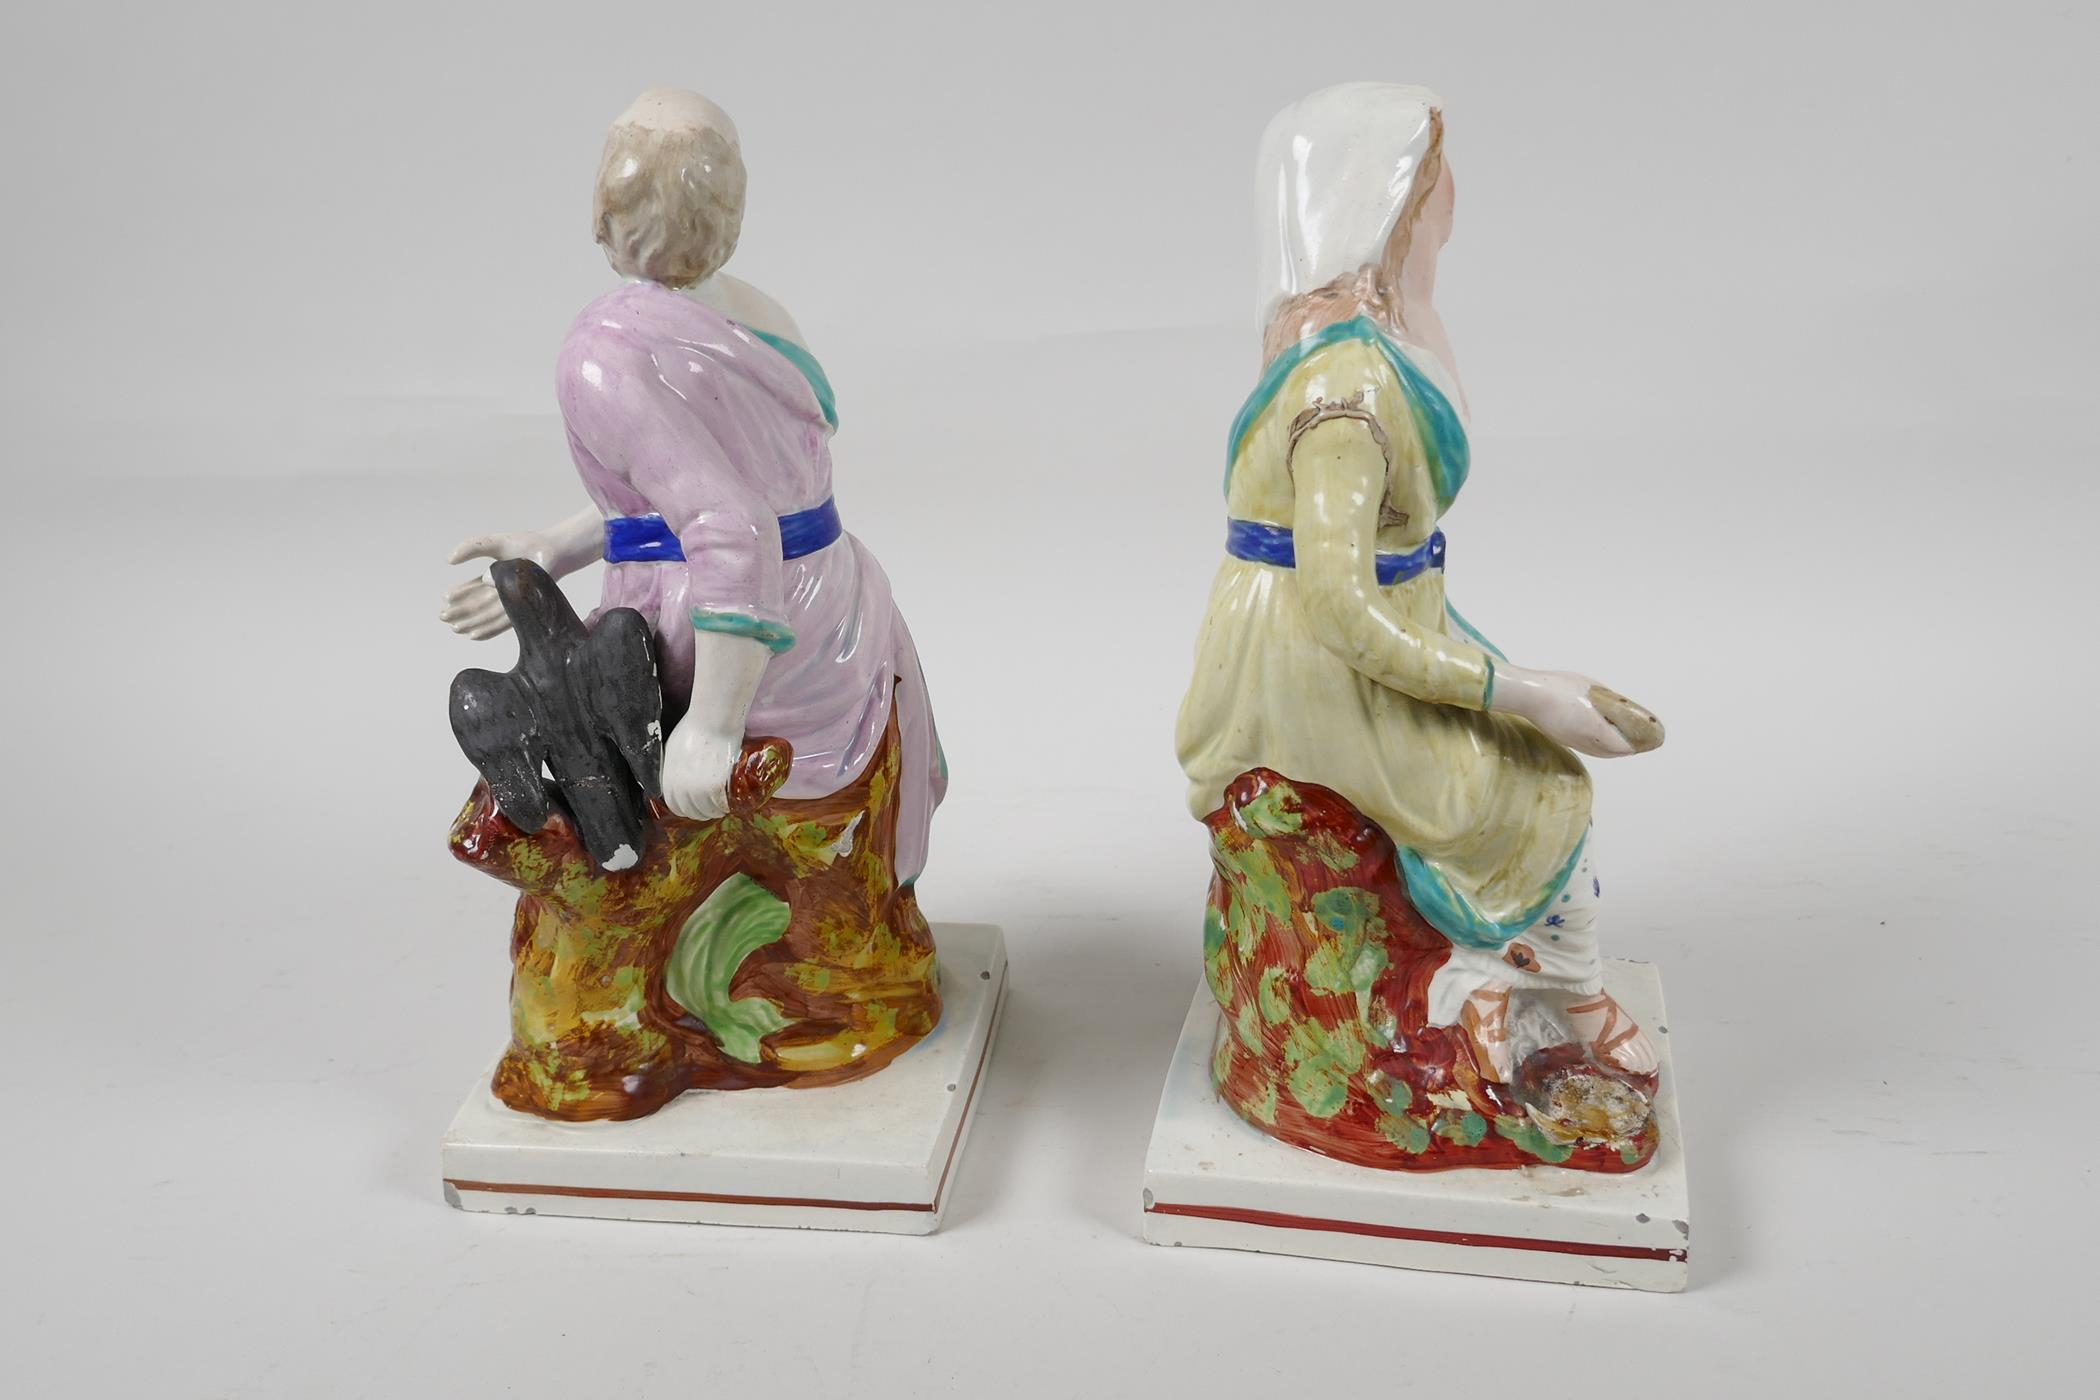 """A pair of C19th Staffordshire pottery figures, Elijah and the Widow, 9"""" high - Image 5 of 5"""